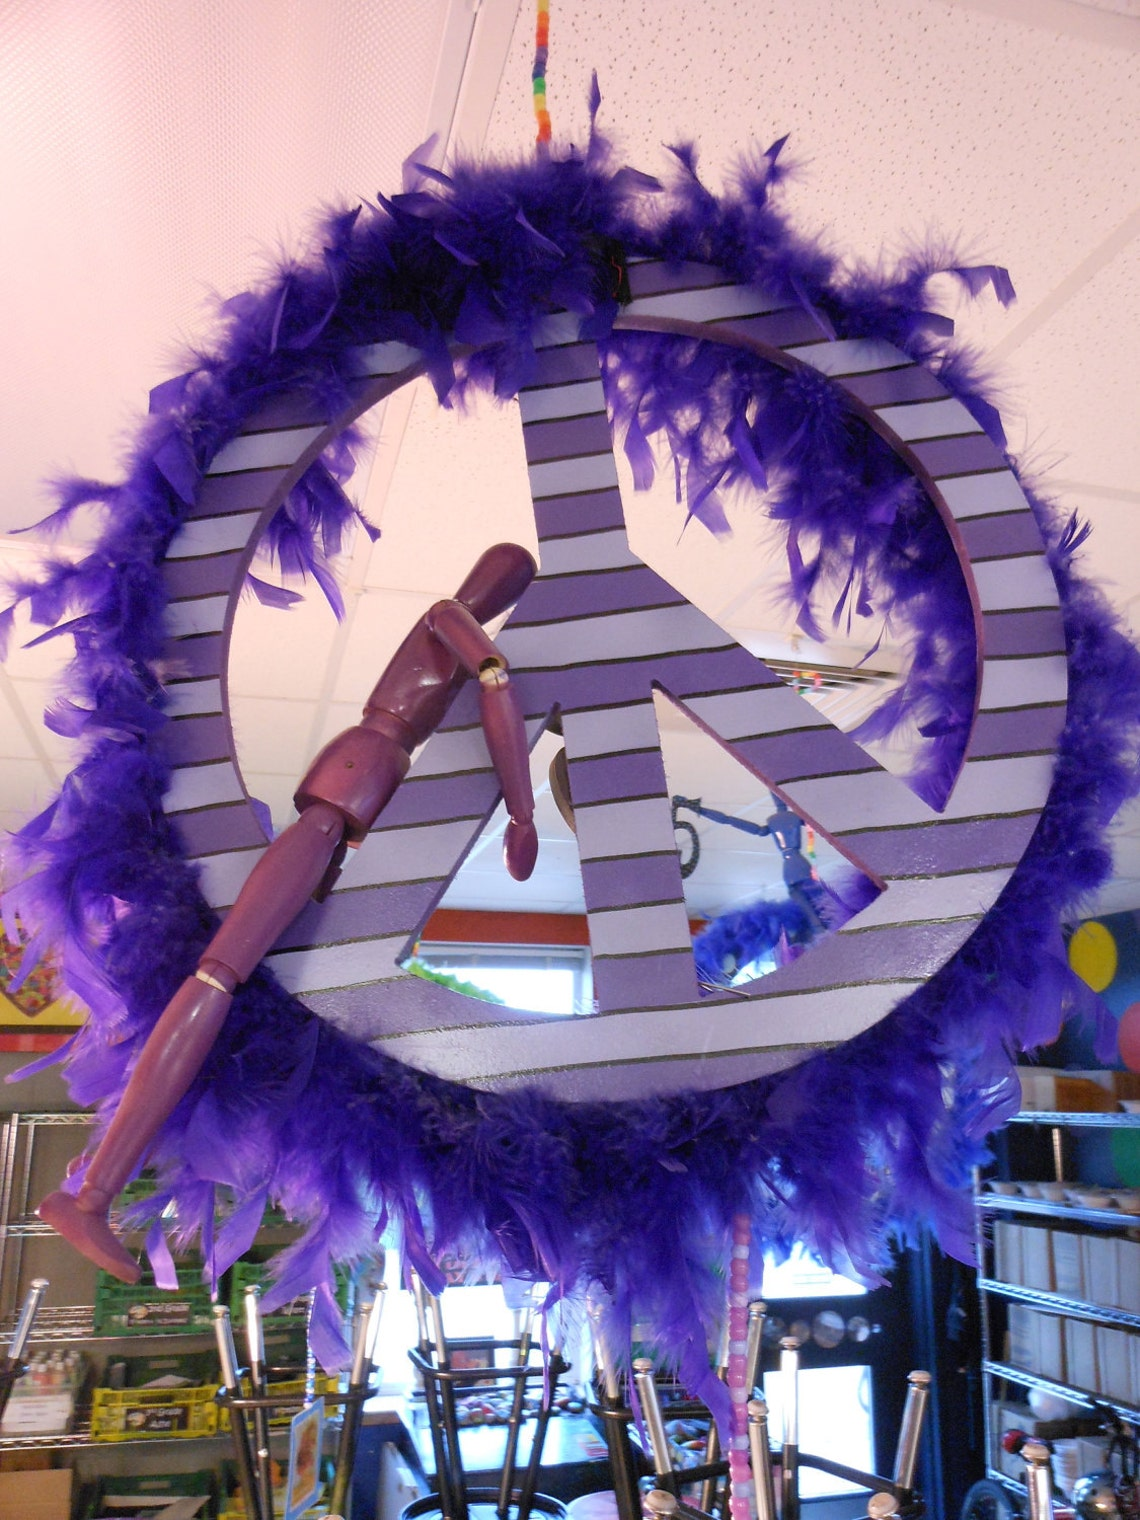 Jez4U Peace Signs BIG and One of a KIND Handpainted Whimsy 18 inch PEACE Signs finished off with a feathered boa